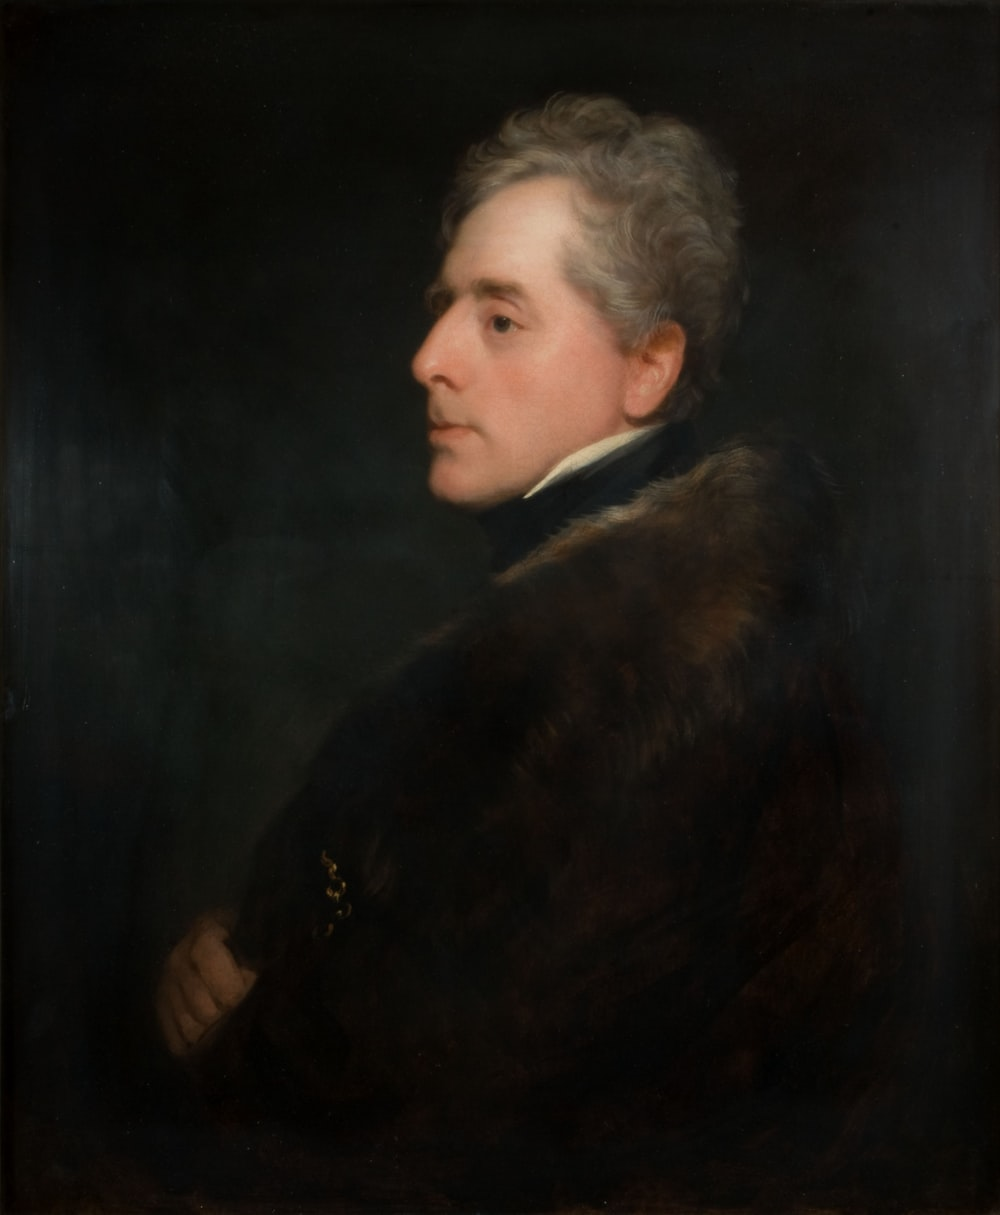 man in black and brown coat painting